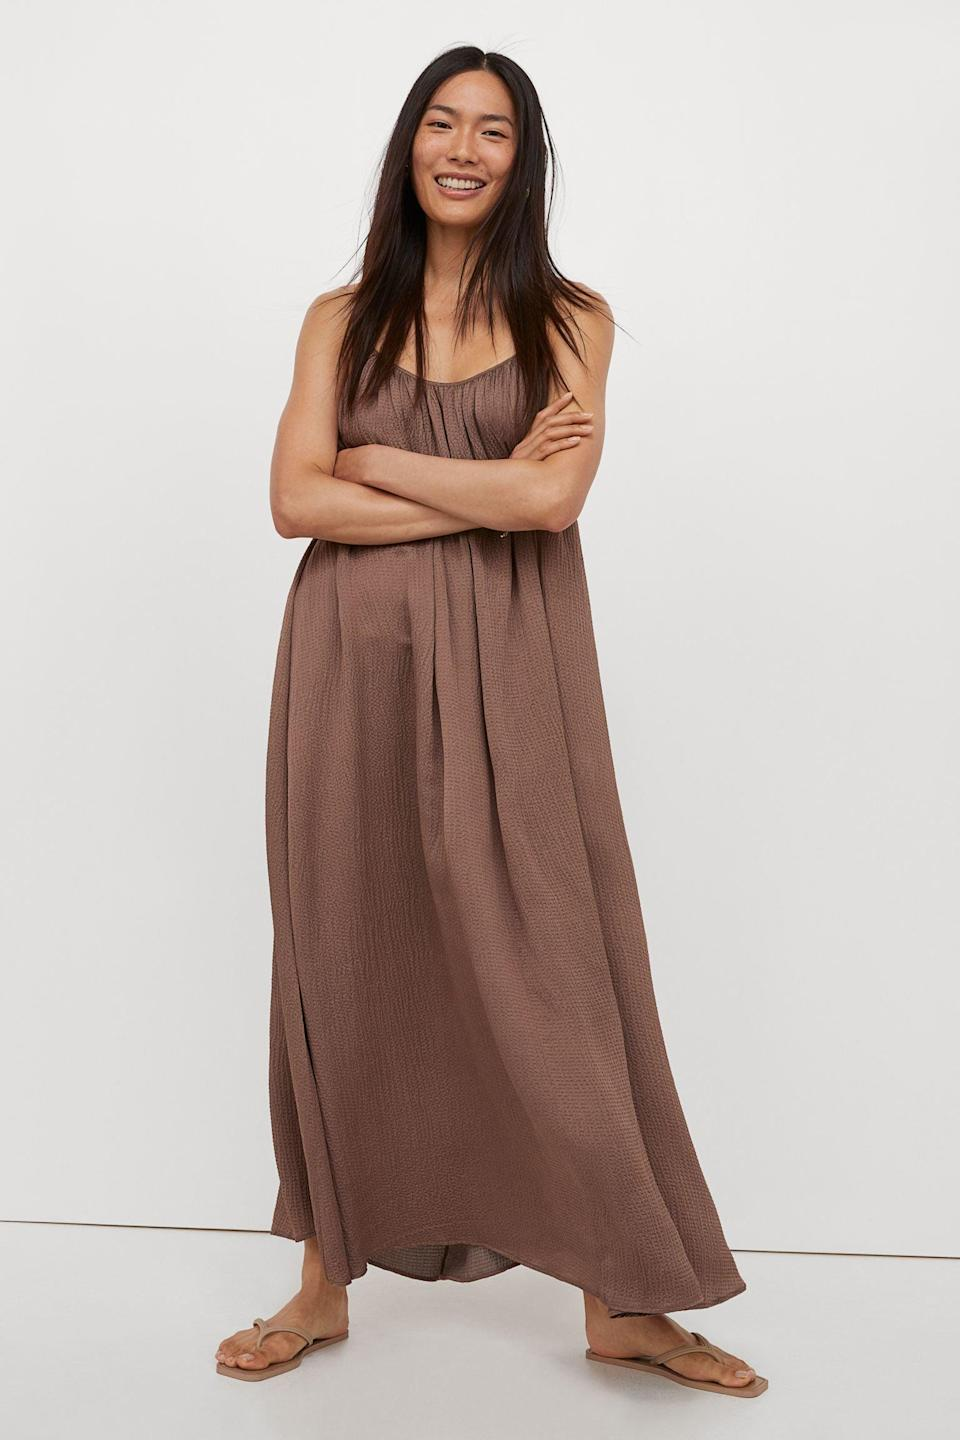 <p>Whether you're looking to impress a first date or you're on your third one with someone you like, this <span>Long Silk-blend Dress</span> ($149) will be sure to get noticed. Finish the look with some kitten heels and a small shoulder bag.</p>